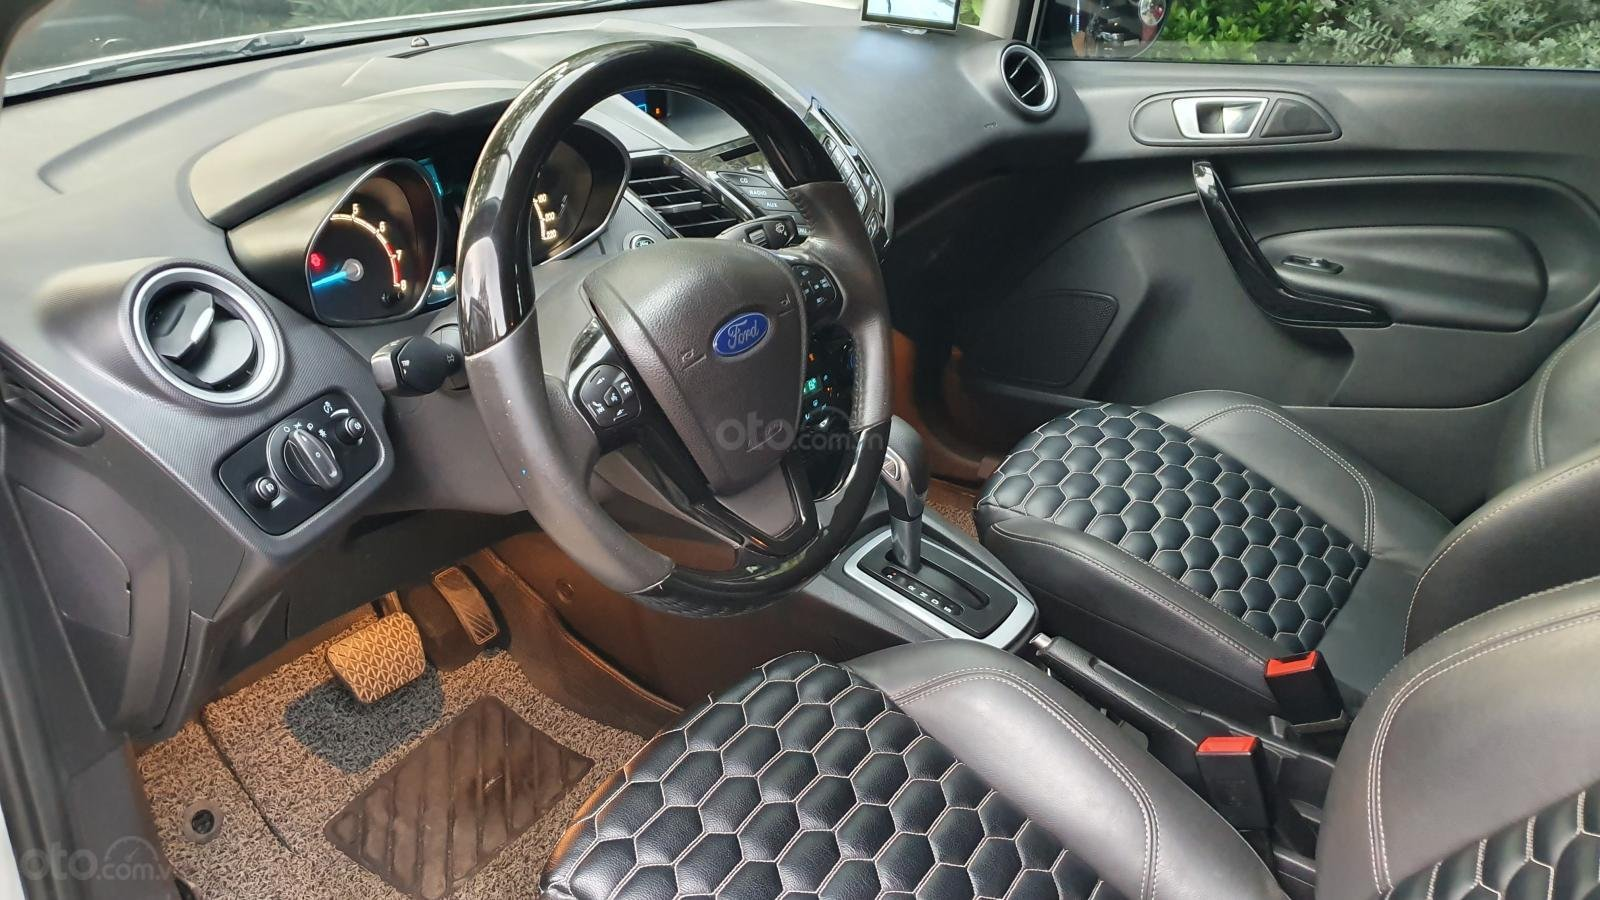 Ford Fiesta S 1.5 AT sx 2016 xe đẹp (7)